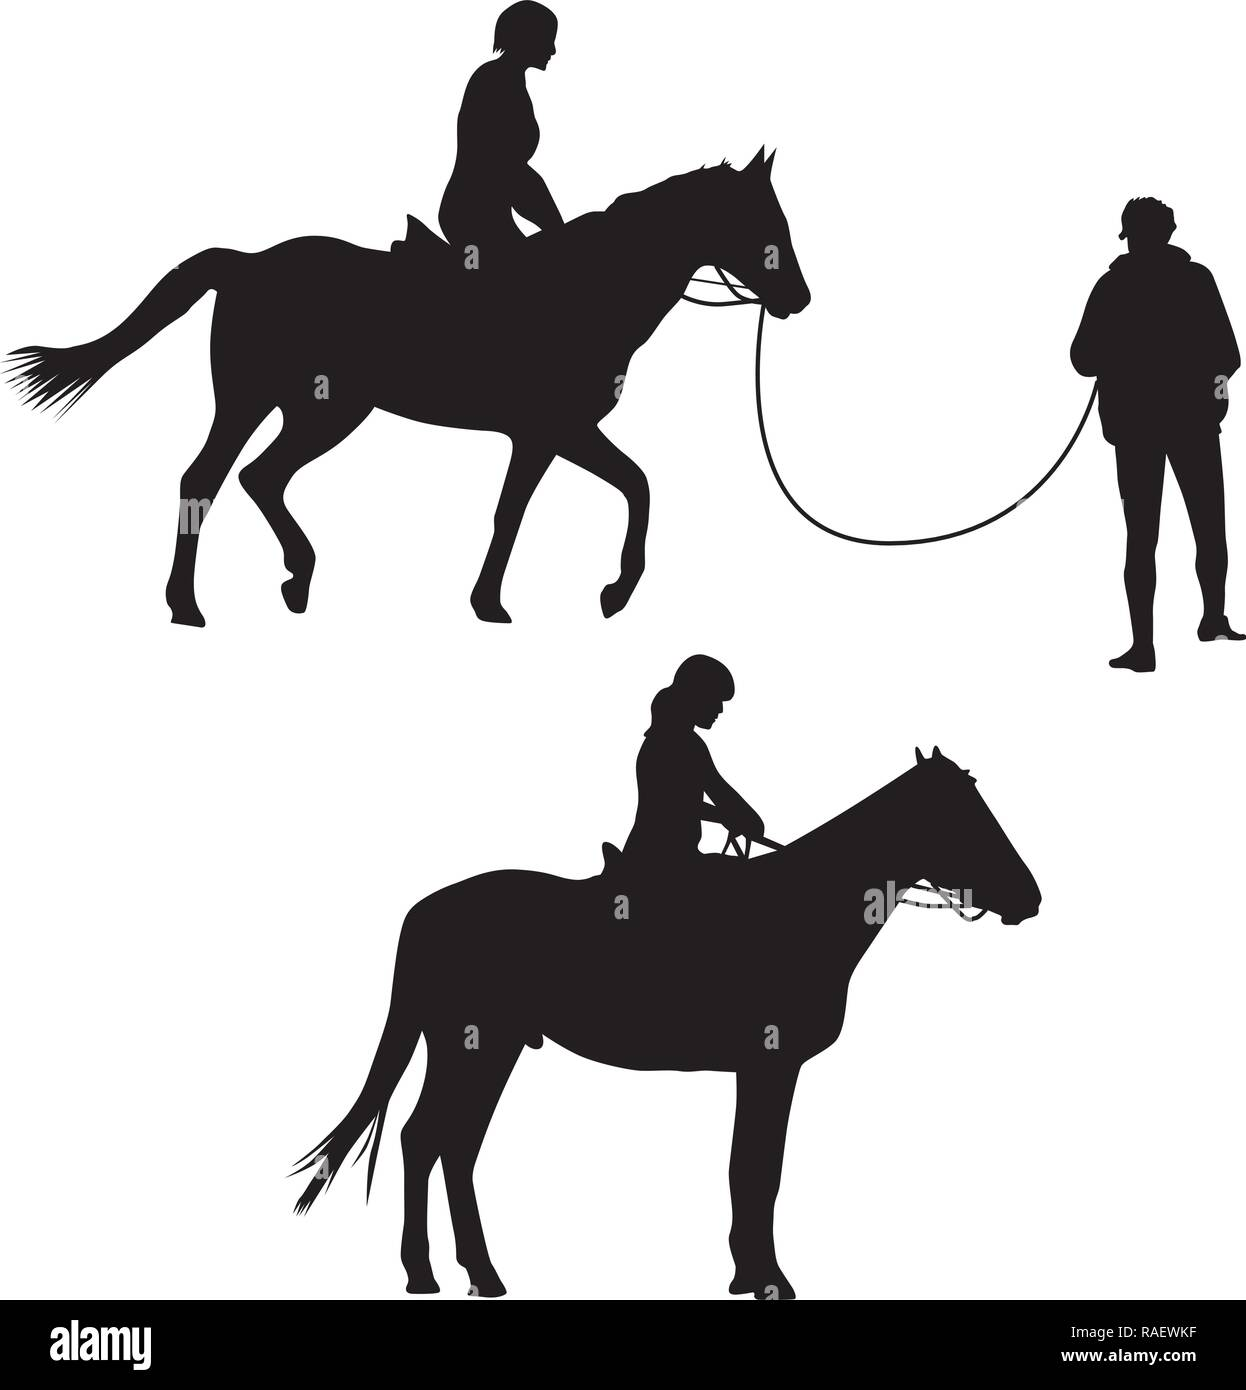 Woman On The Horse Riding Silhouette Vector Stock Vector Image Art Alamy